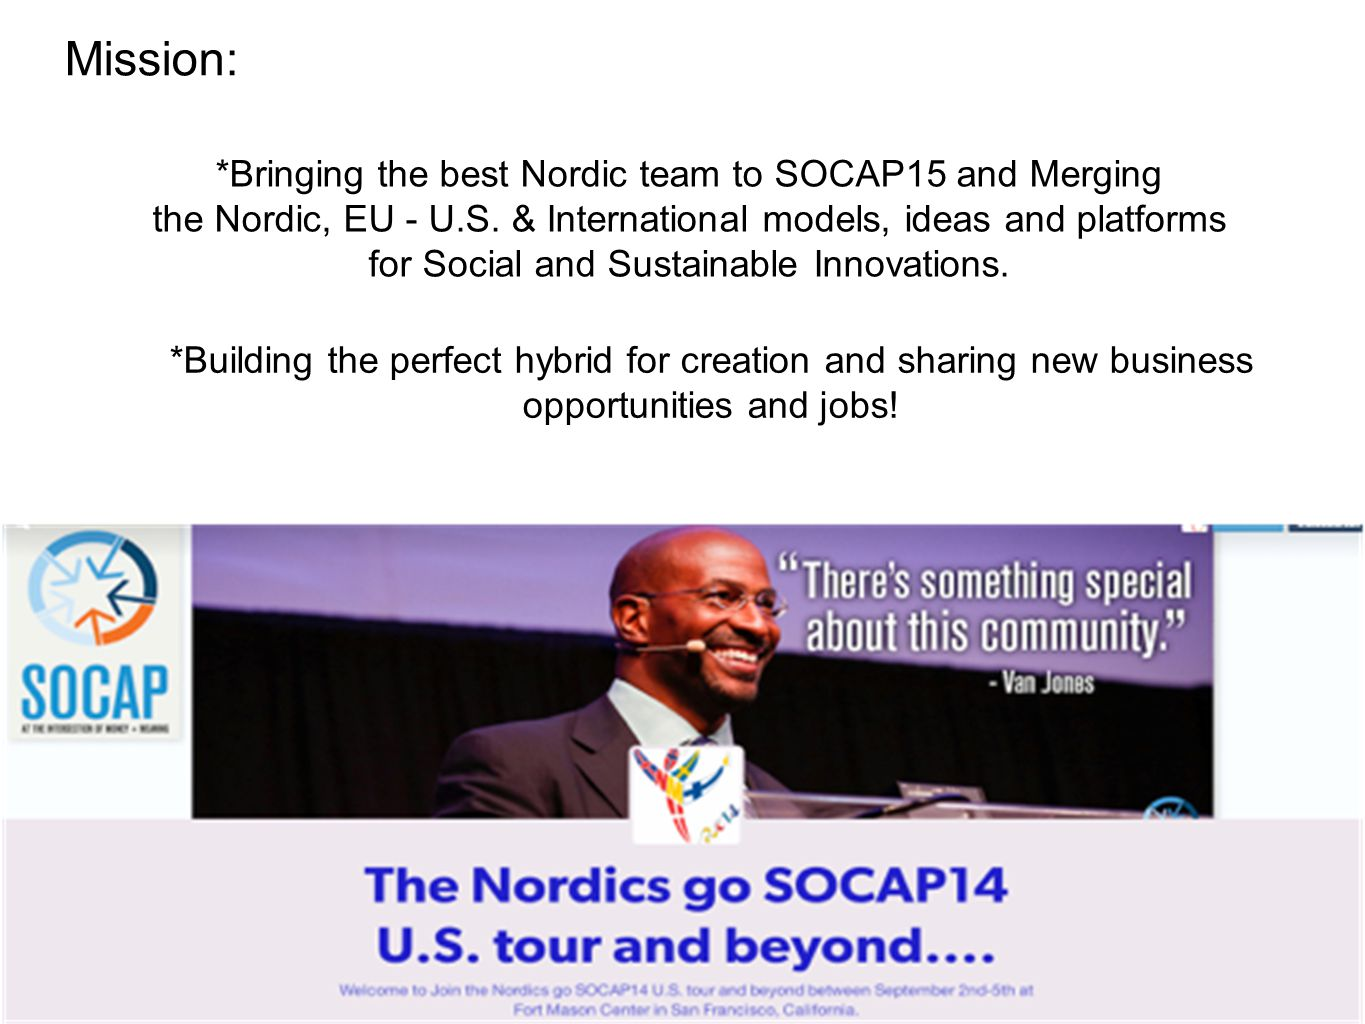 Mission: *Bringing the best Nordic team to SOCAP15 and Merging the Nordic, EU - U.S. & International models, ideas and platforms for Social and Sustai